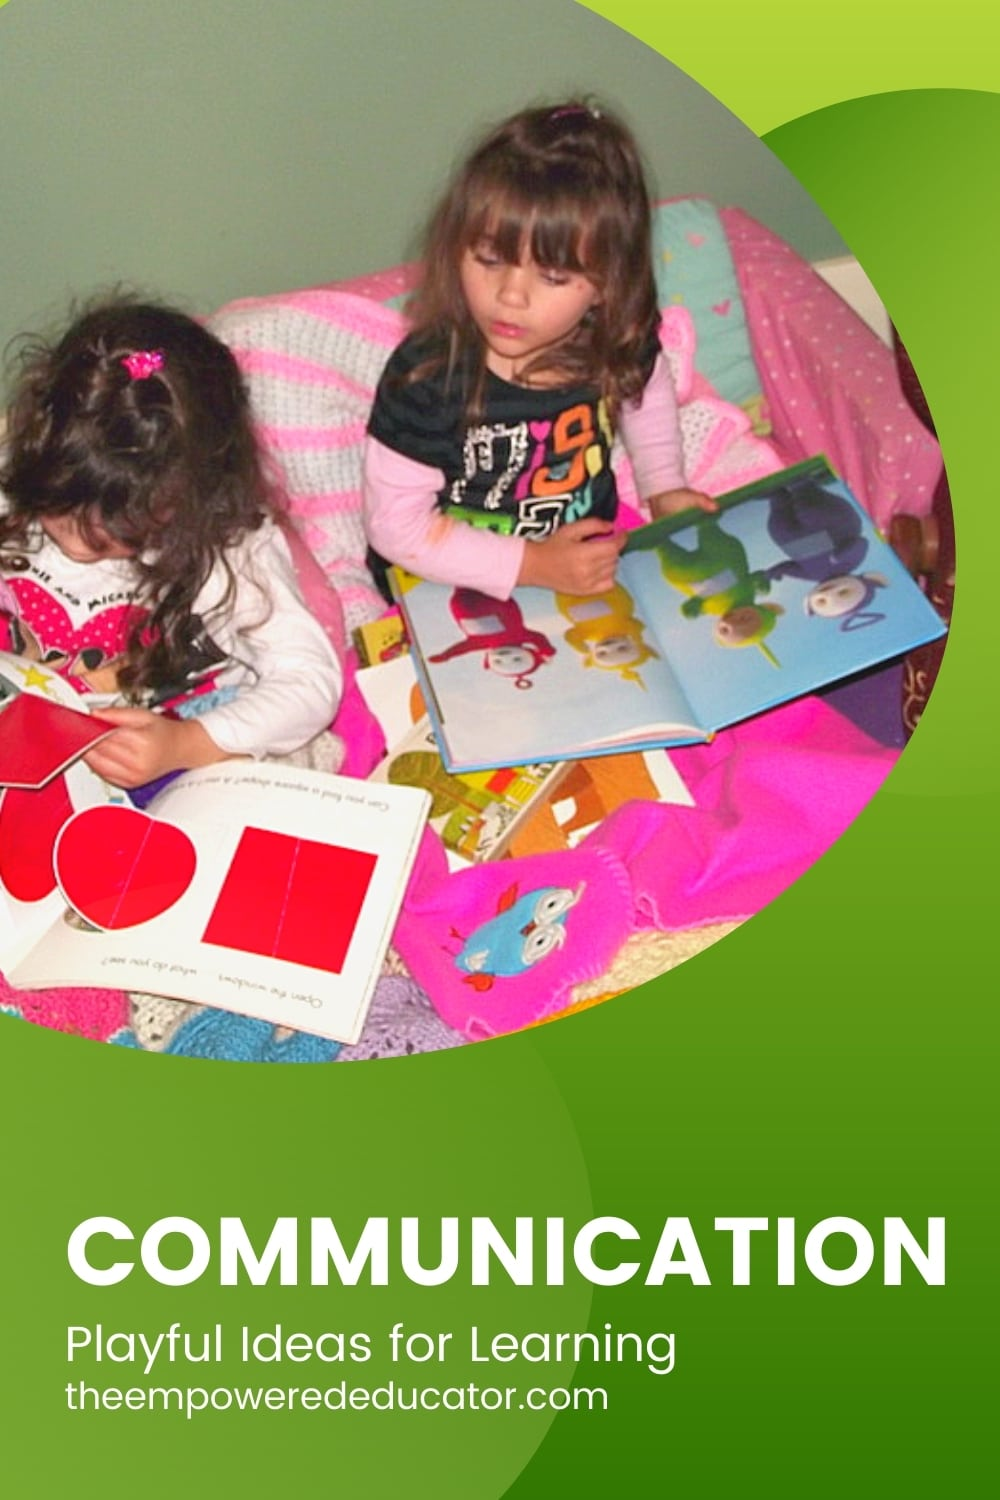 communication playful ideas for learning